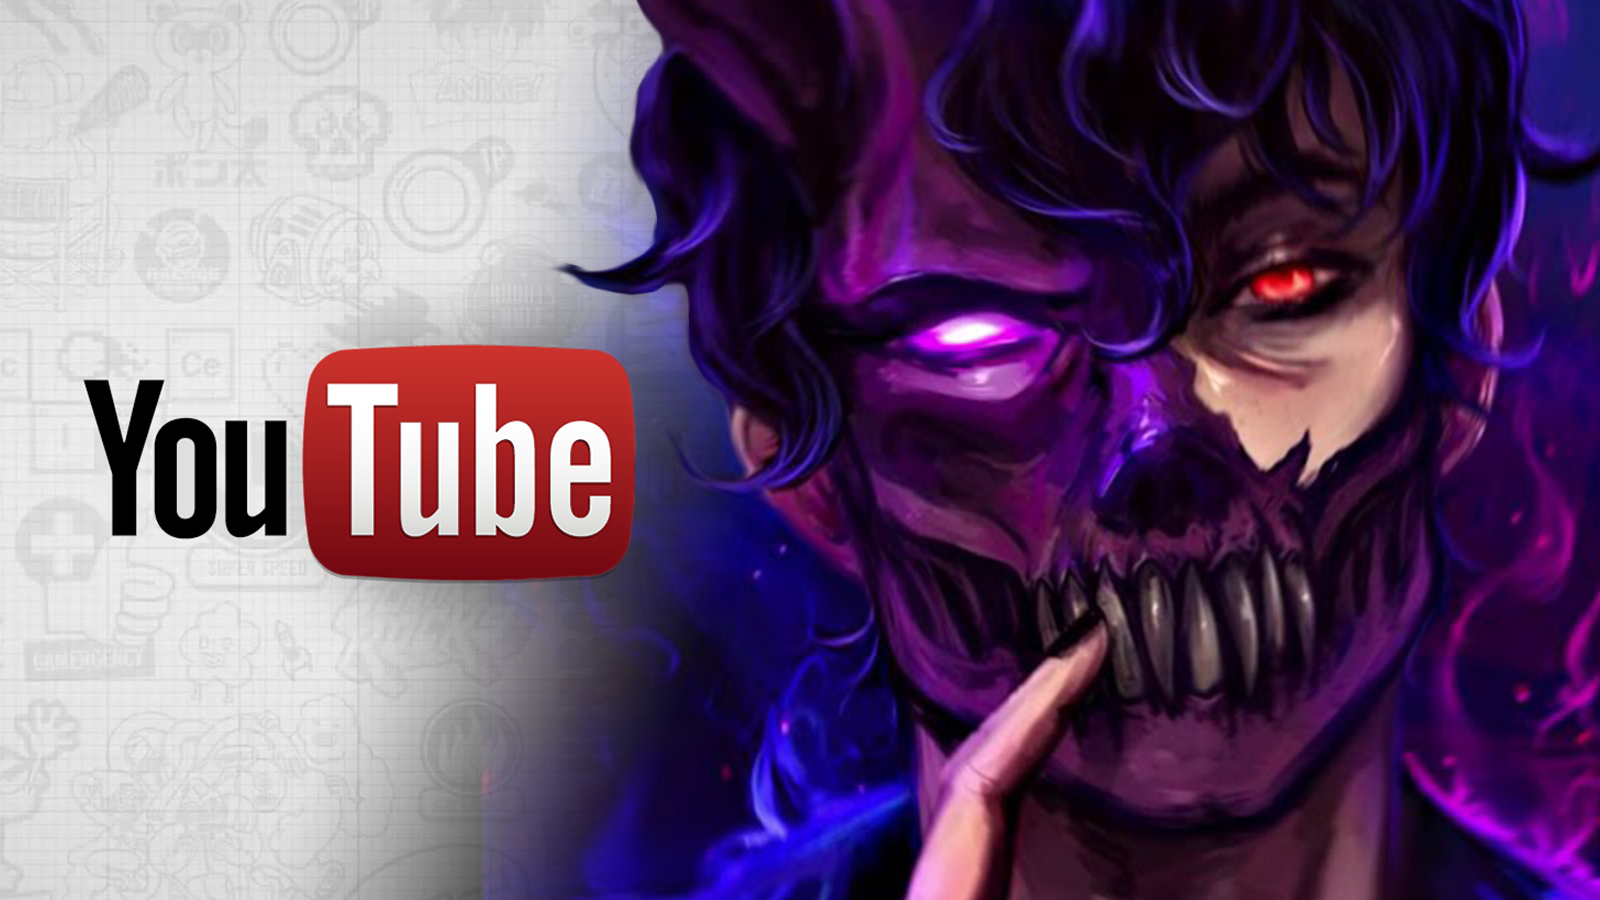 Corpse Husband avatar appears next to YouTube, which he's set to quit.